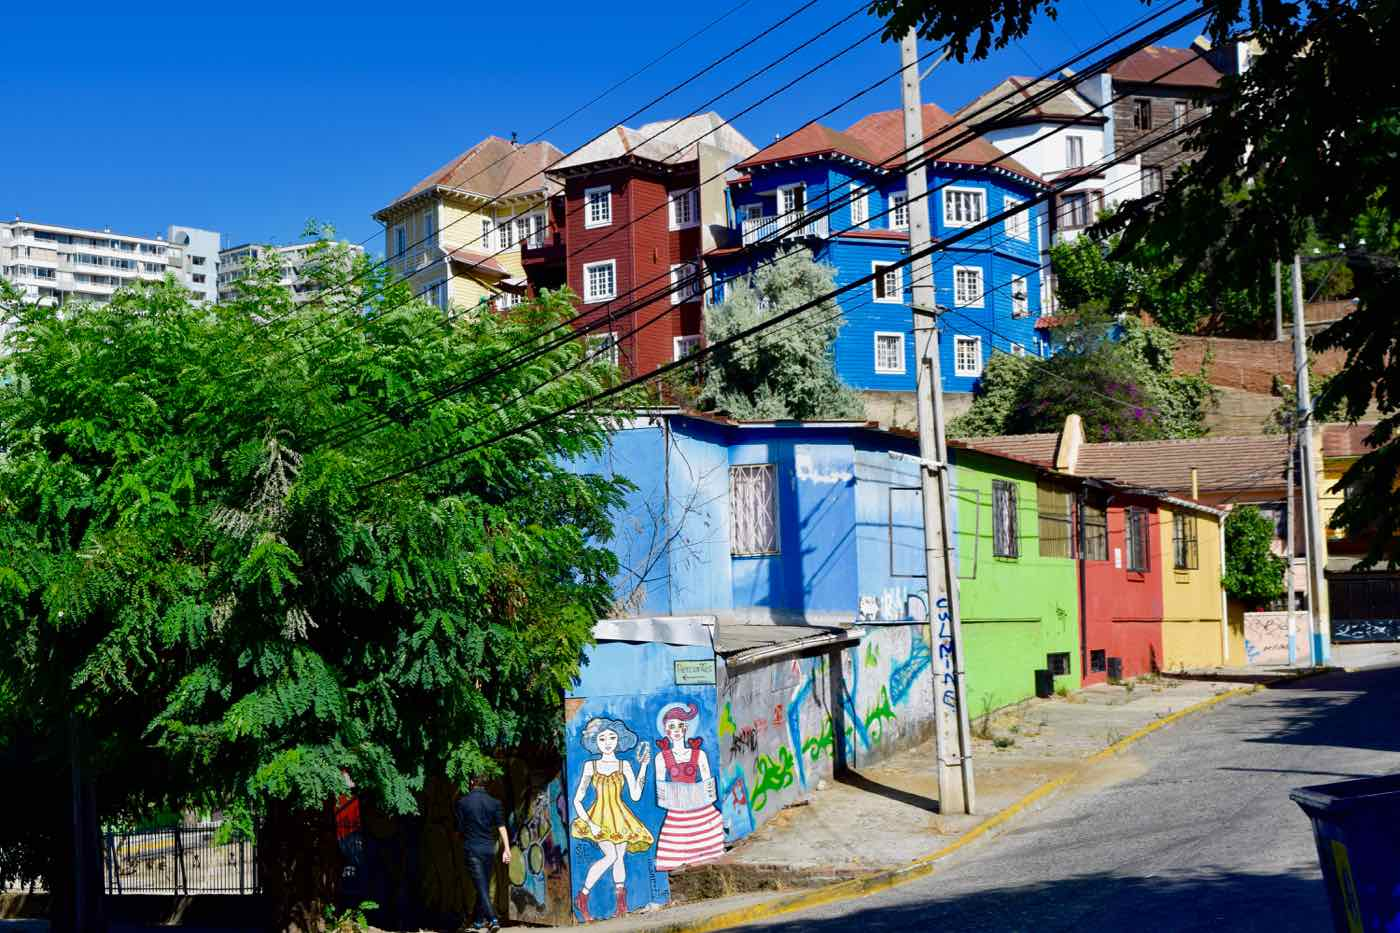 Some of the best street art in Valparaiso, Chile